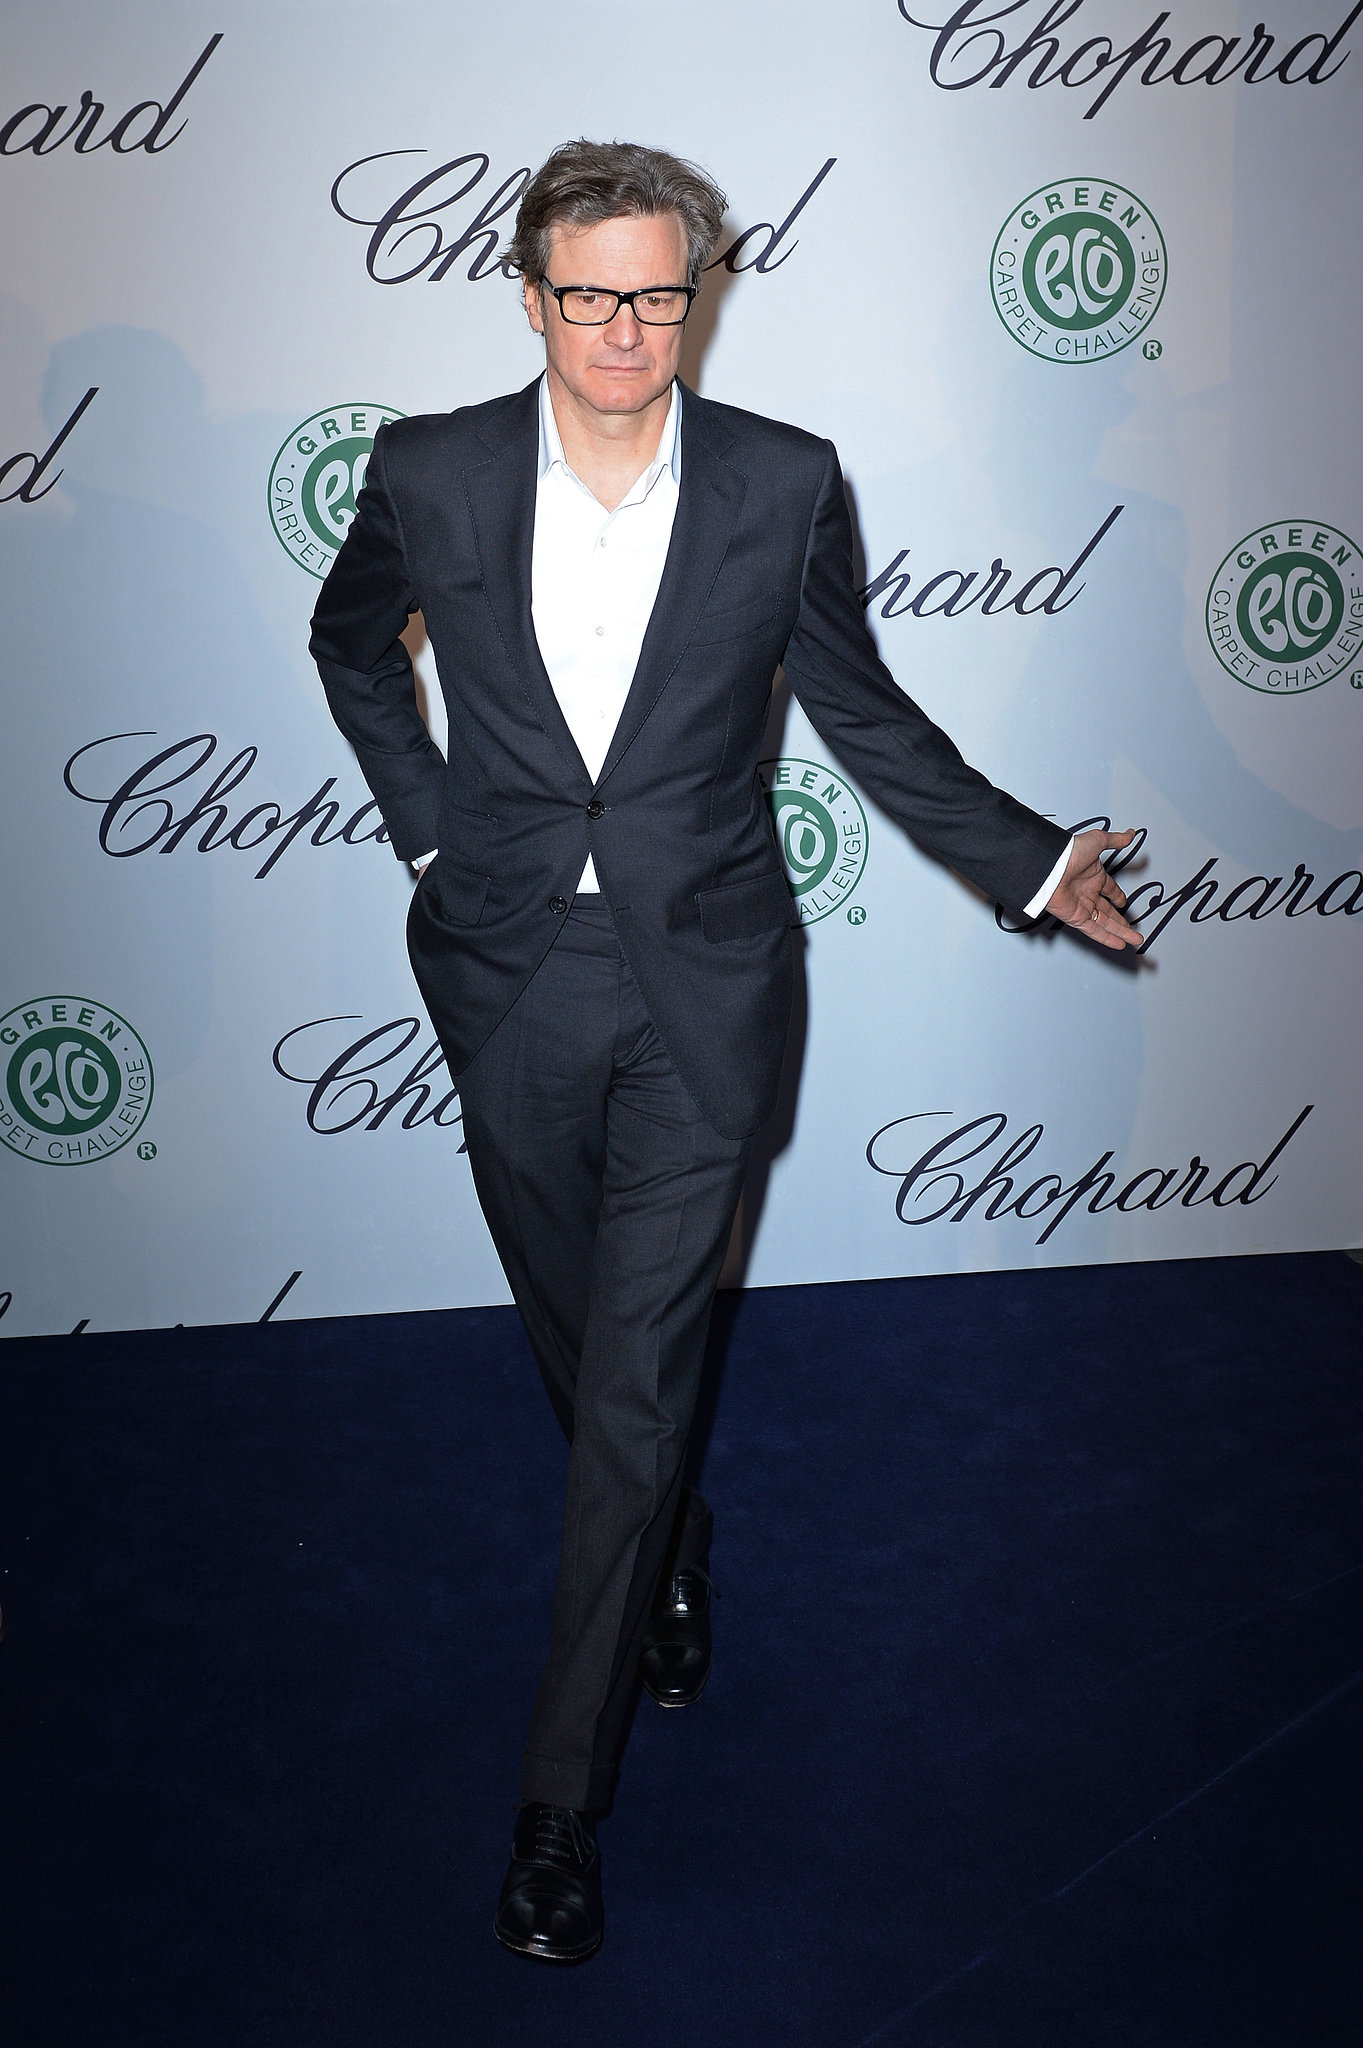 Colin Firth joked with photographers on Friday at a Chopard event.